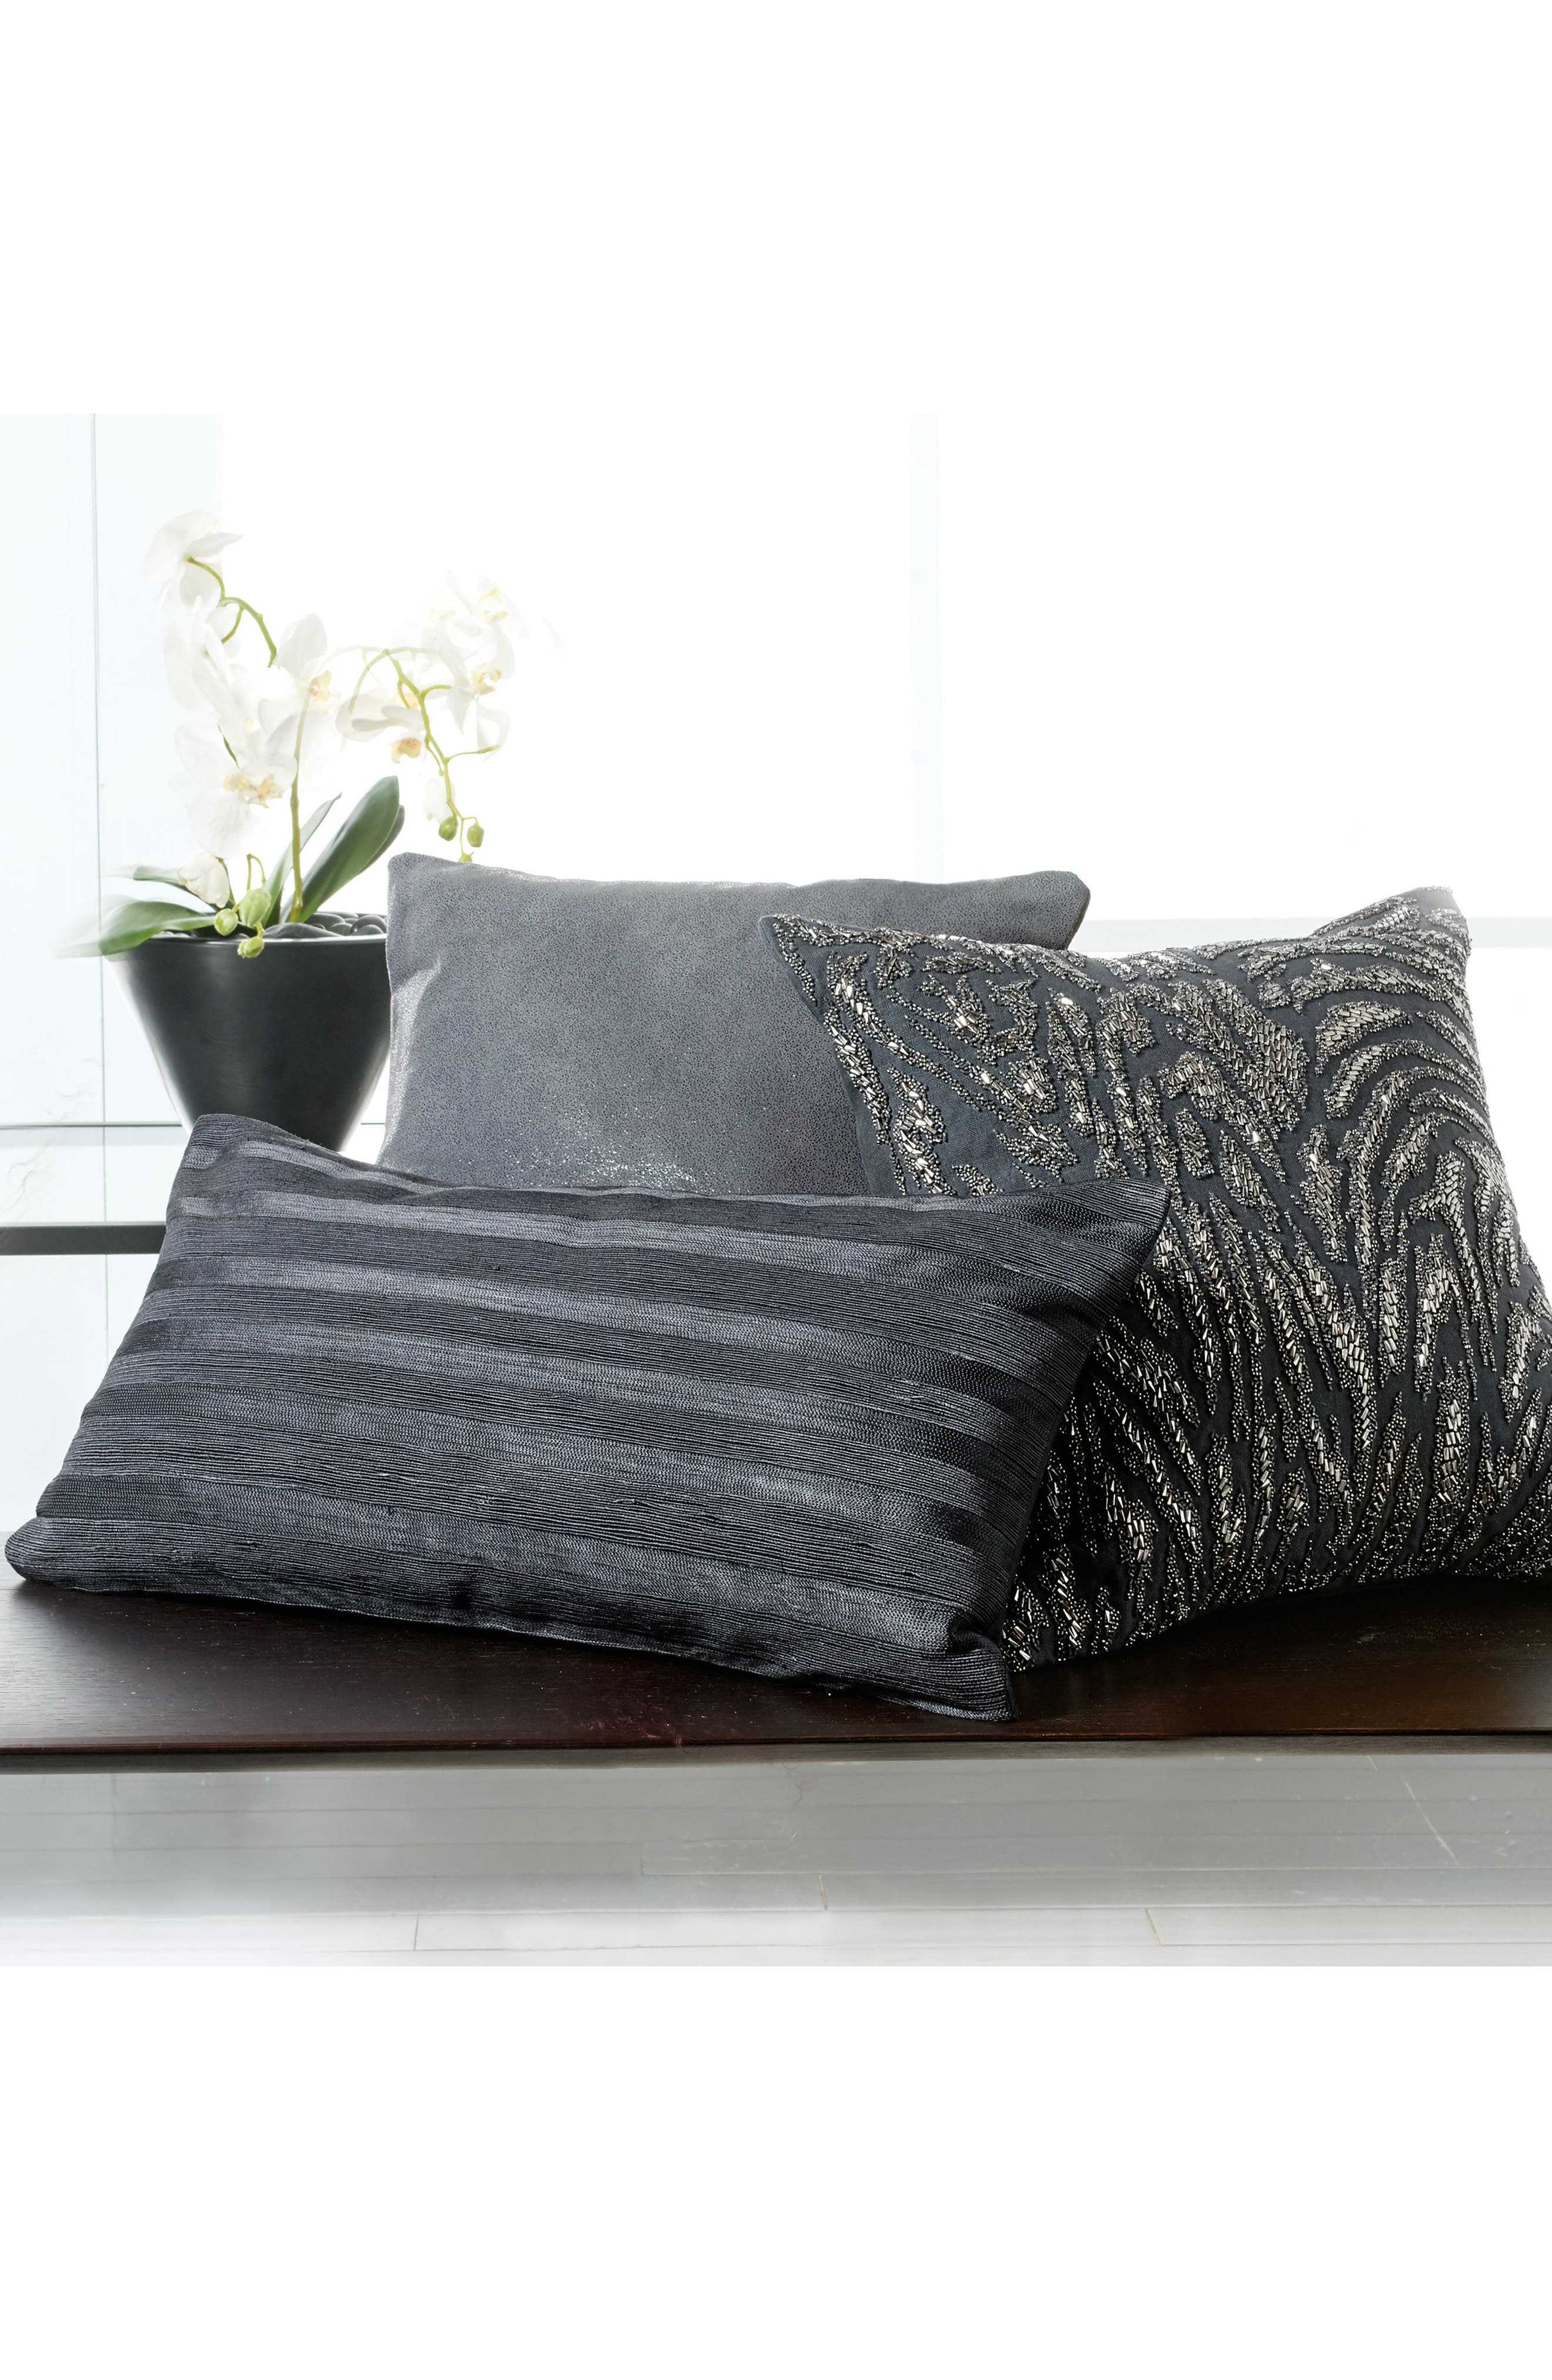 Moonscape Leather Accent Pillow,                             Alternate thumbnail 5, color,                             Charcoal